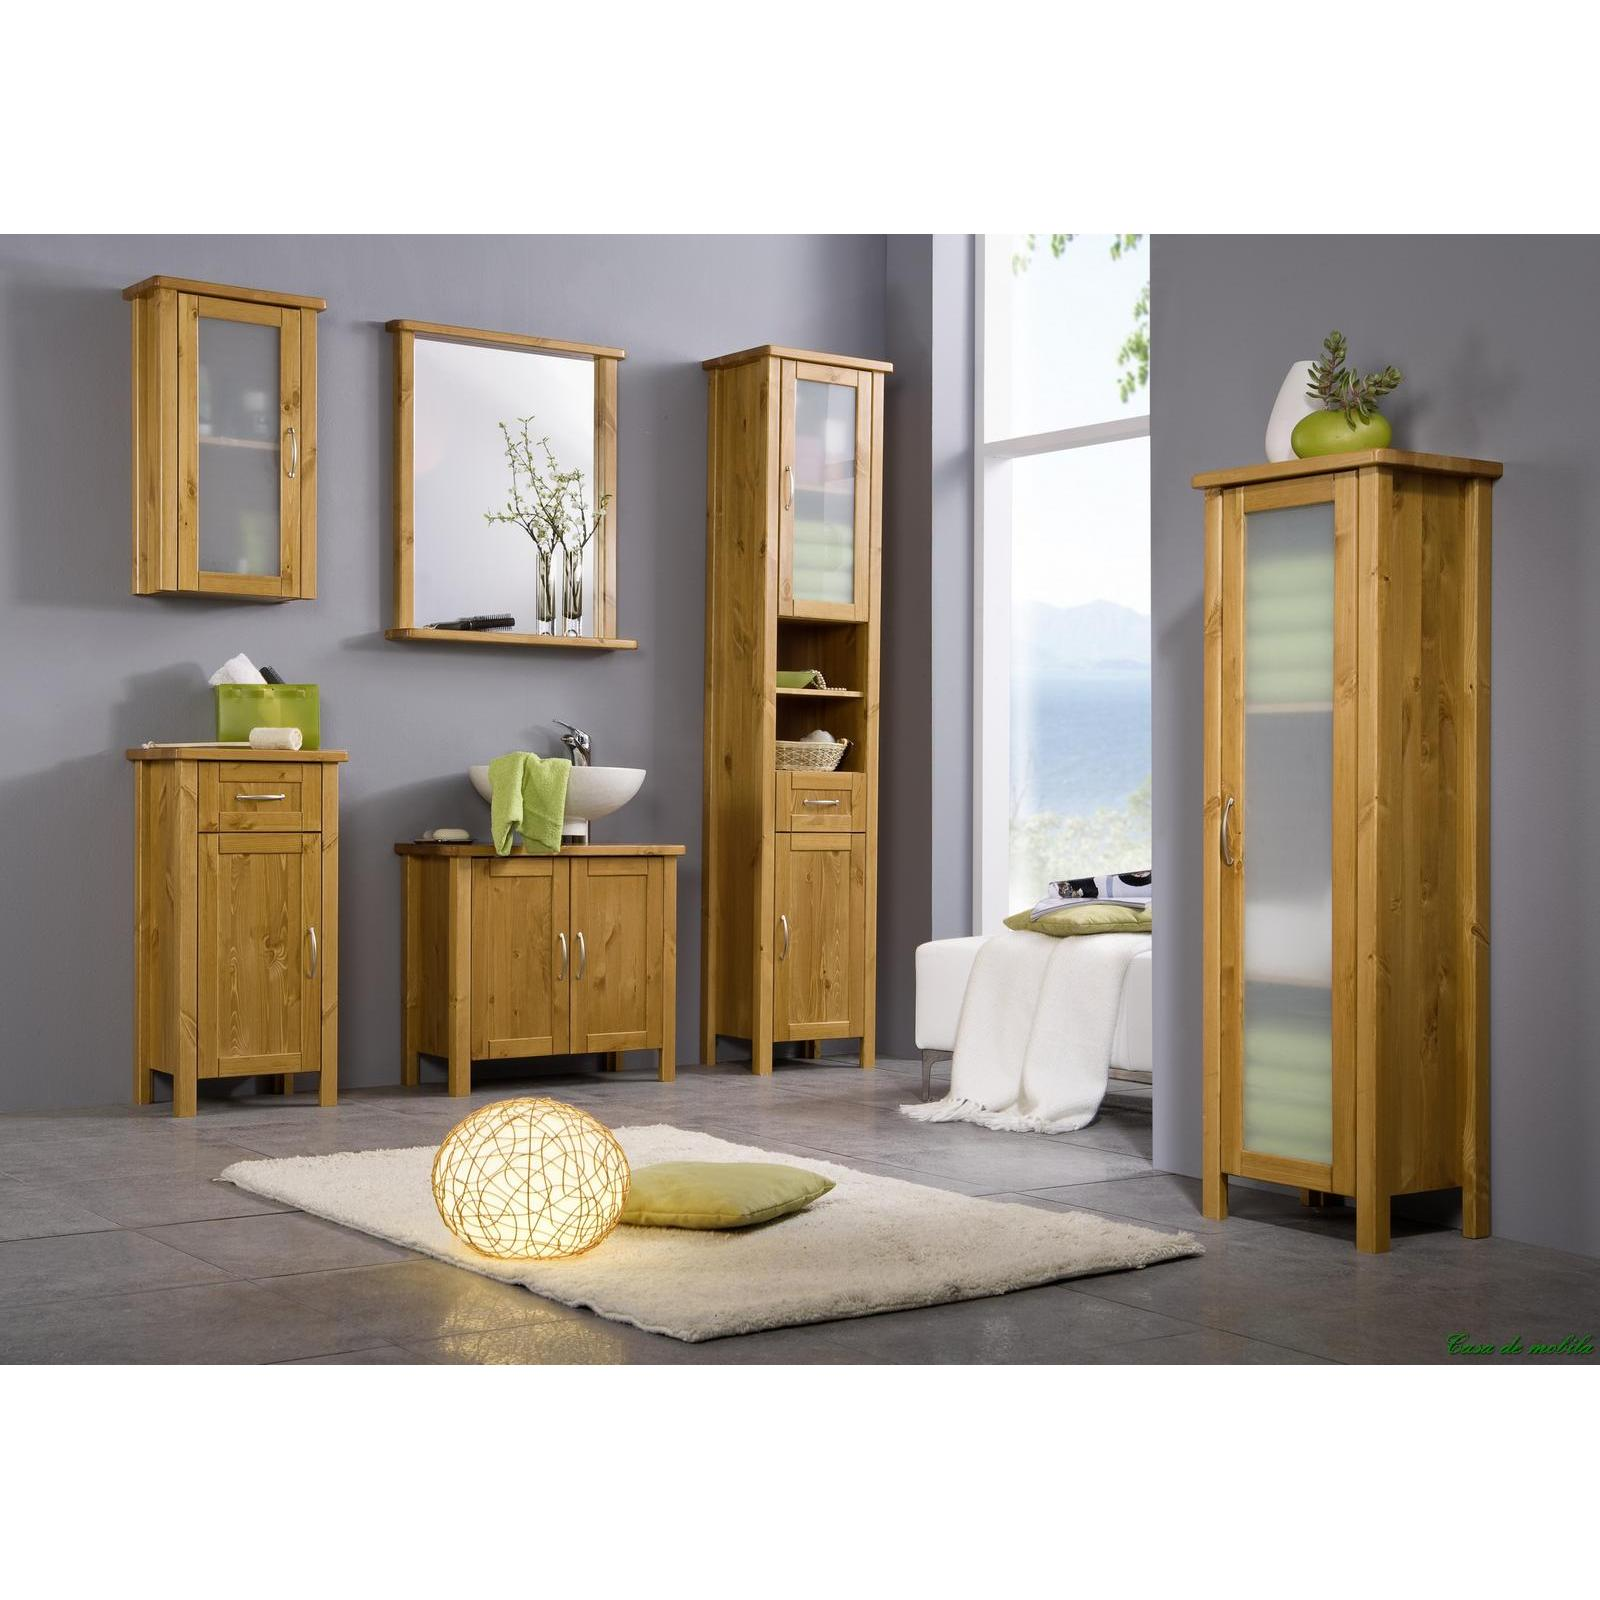 massivholz badschrank hochschrank bad m bel kiefer massiv honig lackiert venedig ebay. Black Bedroom Furniture Sets. Home Design Ideas